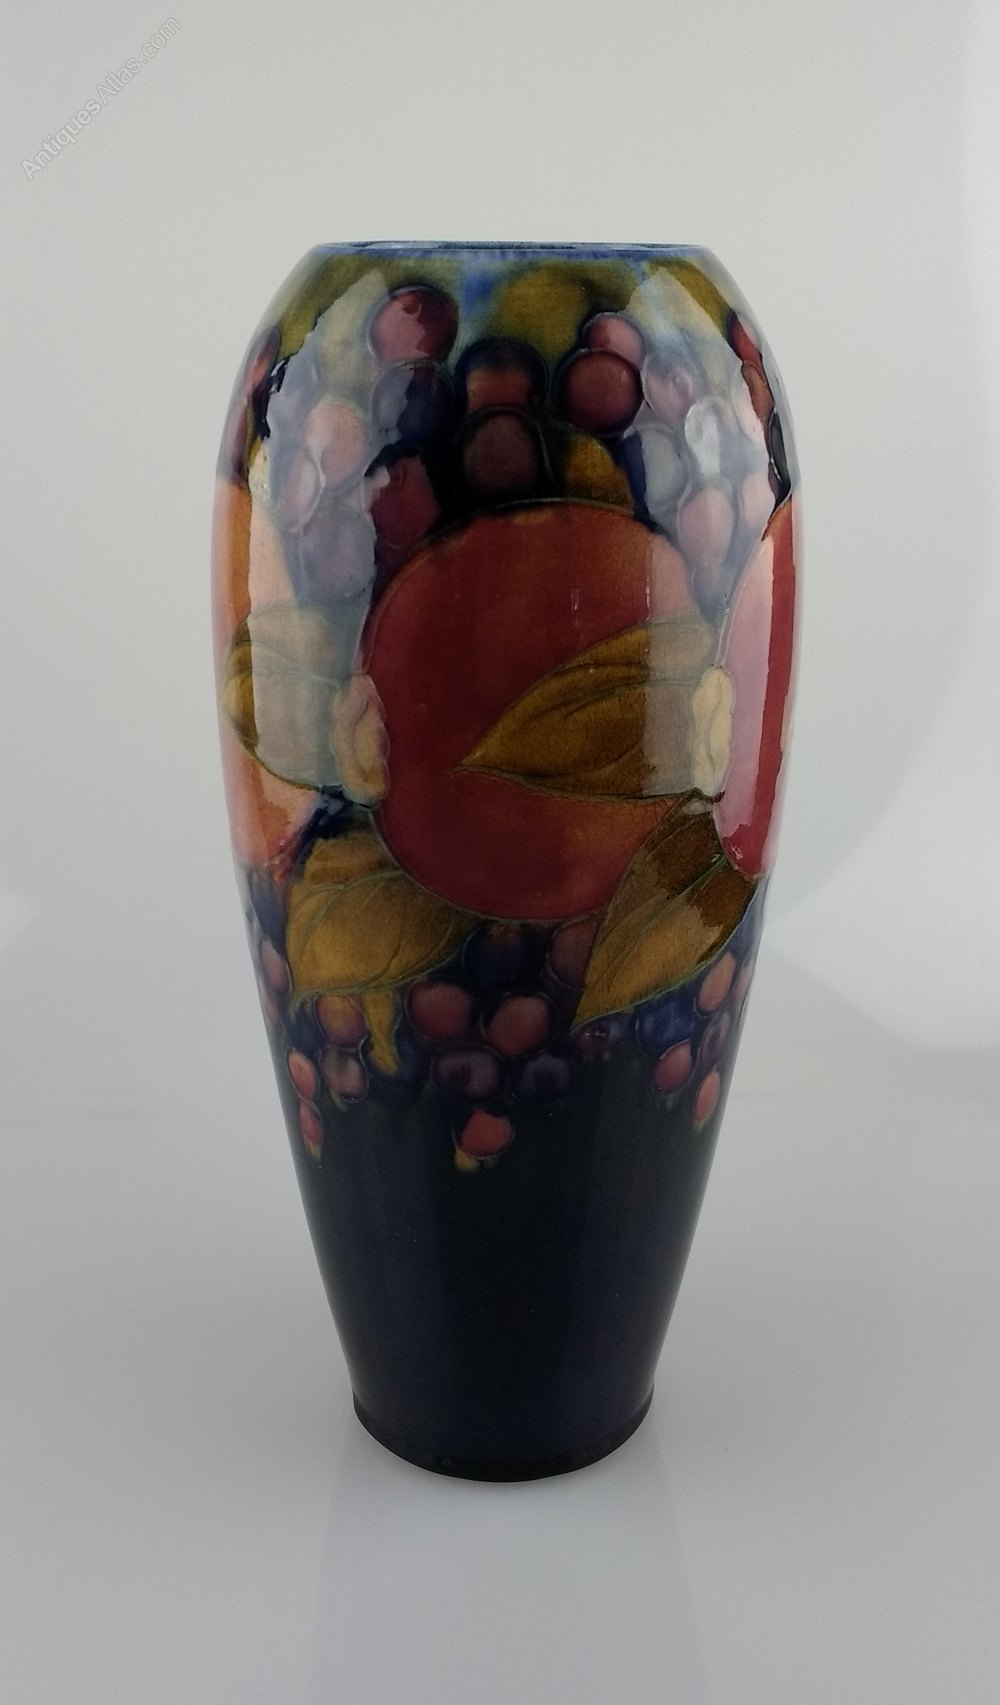 dating william moorcroft pottery William moorcroft founded moorcroft pottery while working for james macintyre & co and quickly became recognized for quality and innovation in english art pottery.